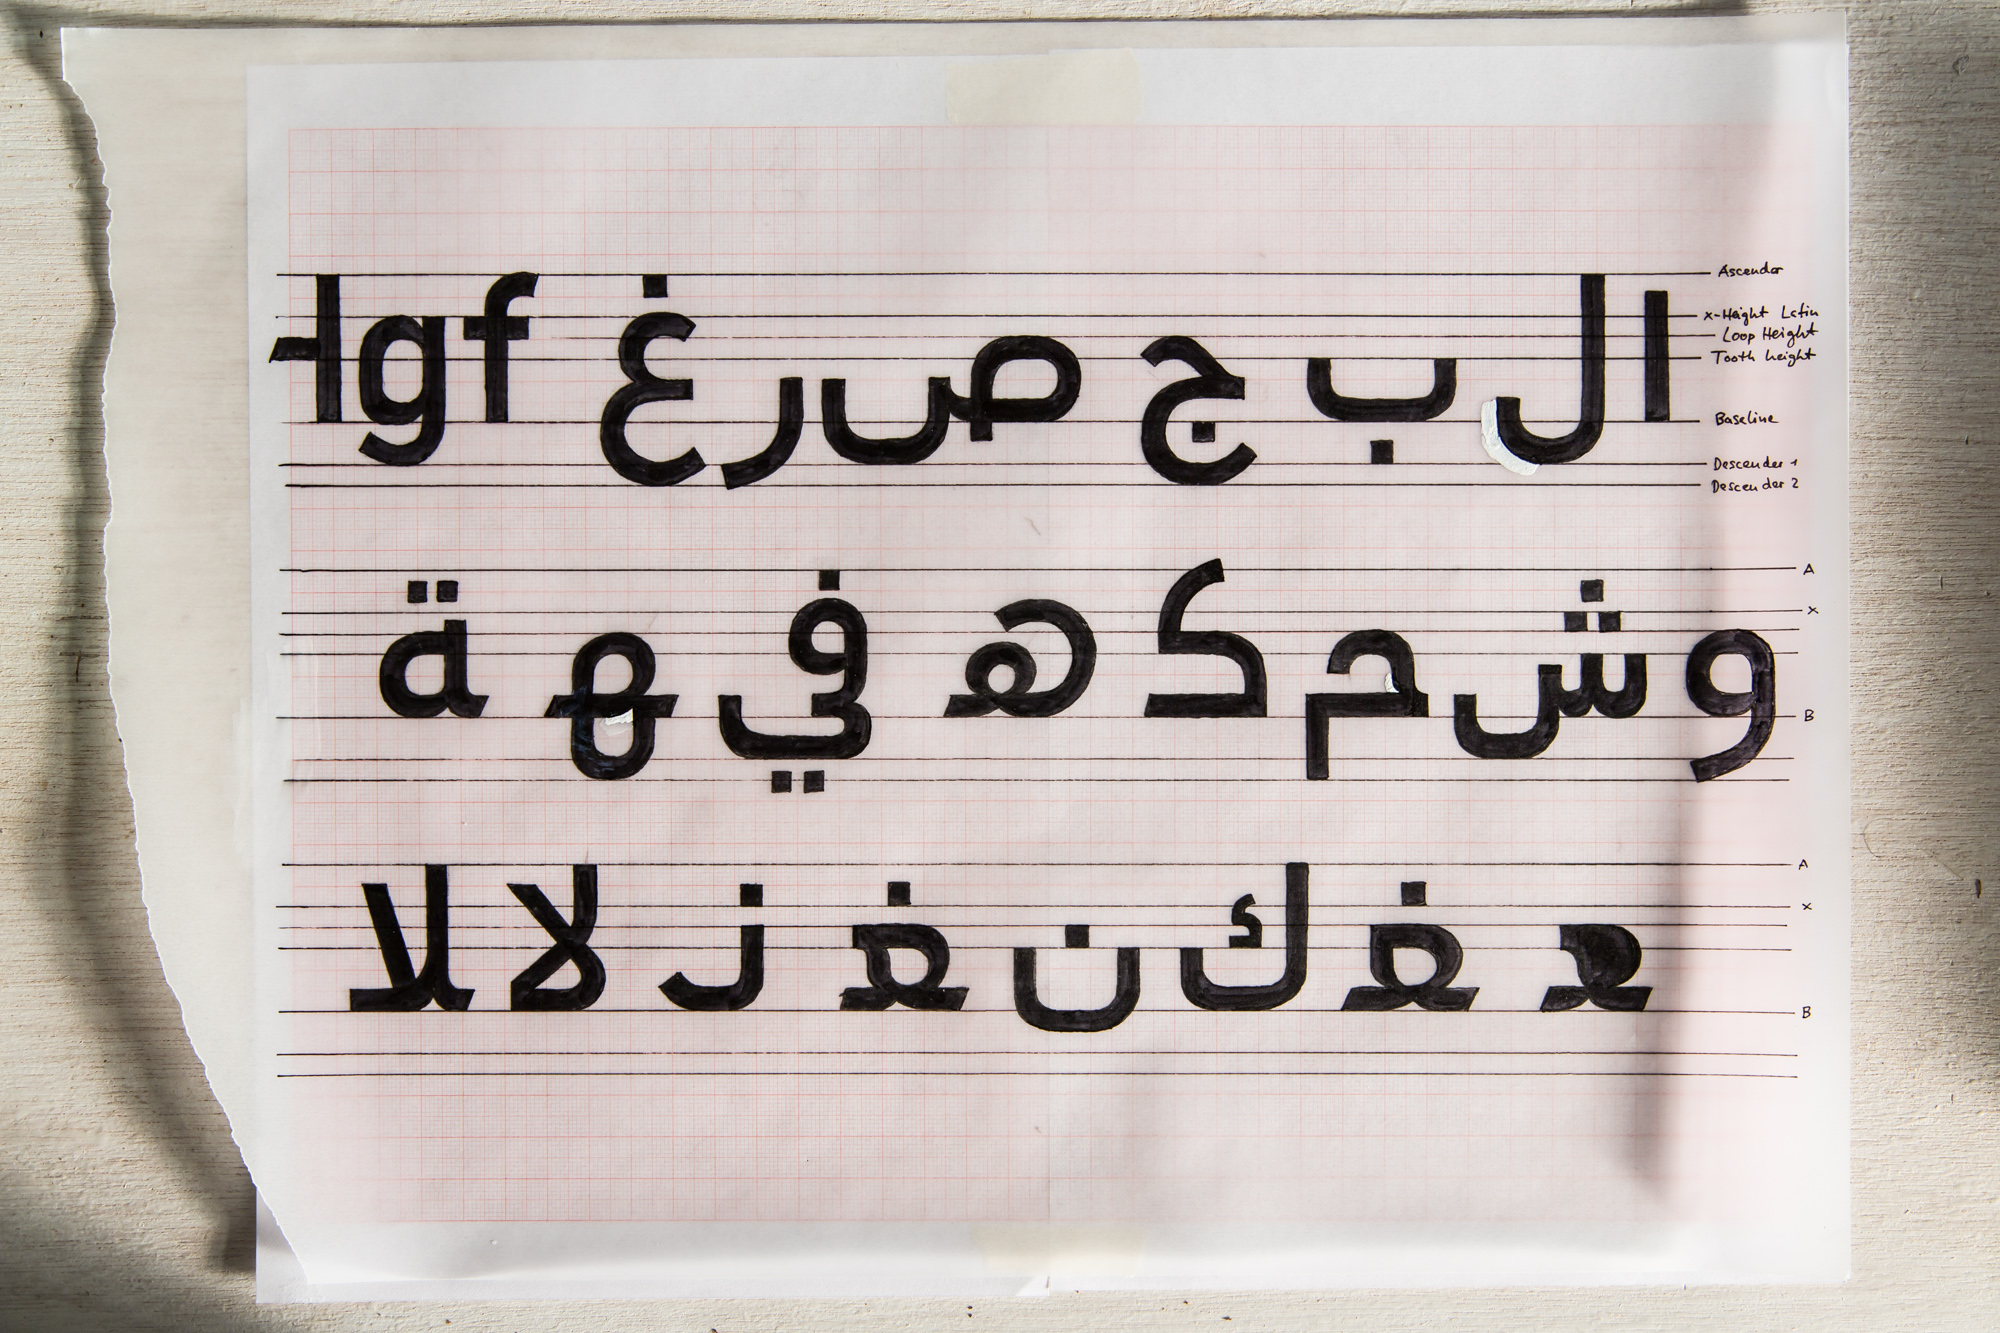 Early family and letterform study, showing FF DIN Arabic's relationship to the Latin baseline